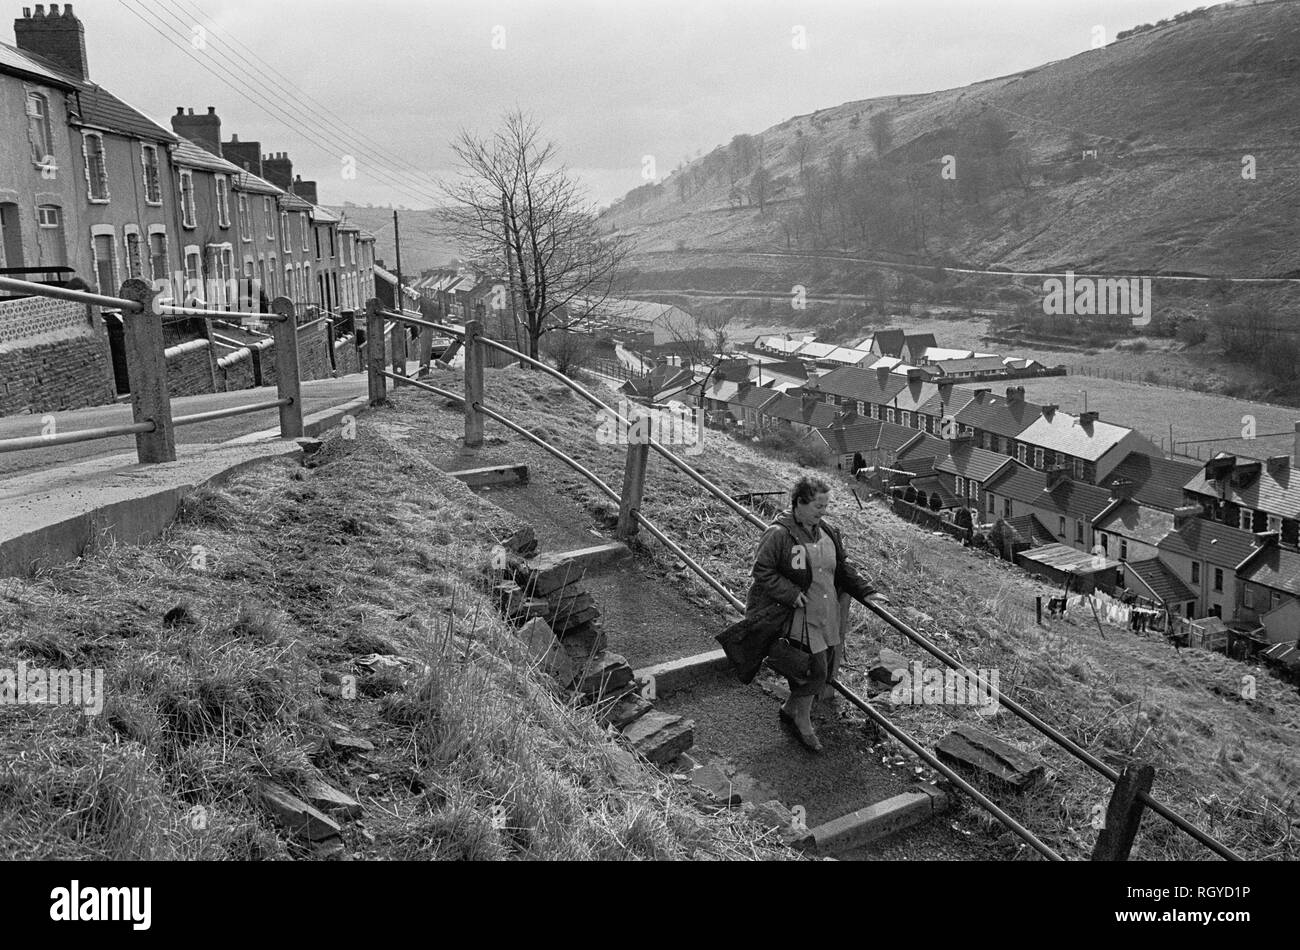 New Tredegar, South Wales,1987 - Stock Image